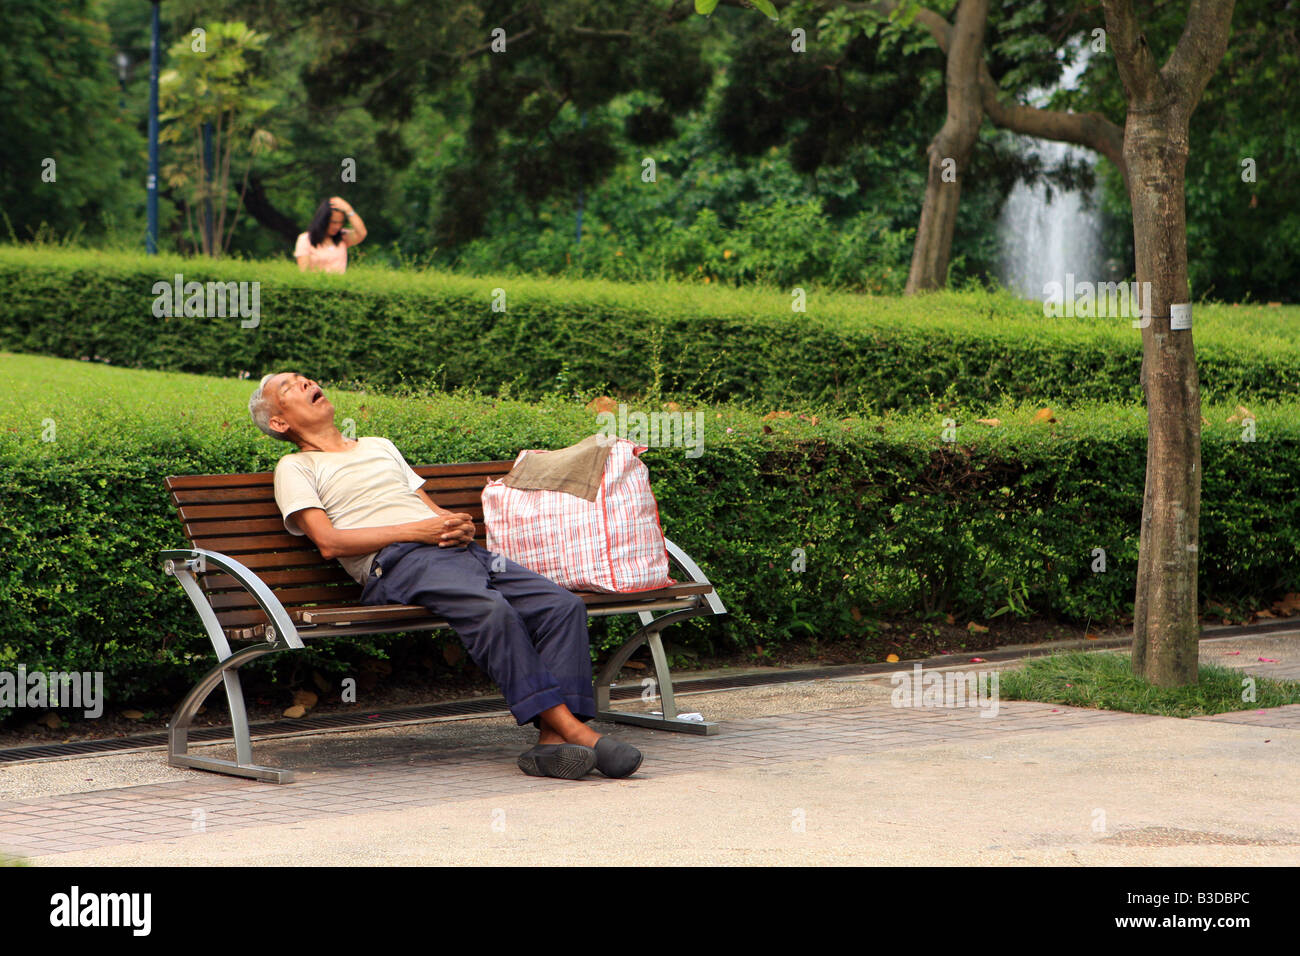 Man snoozes on a bench in a public park in Kowloon, Hong Kong - Stock Image